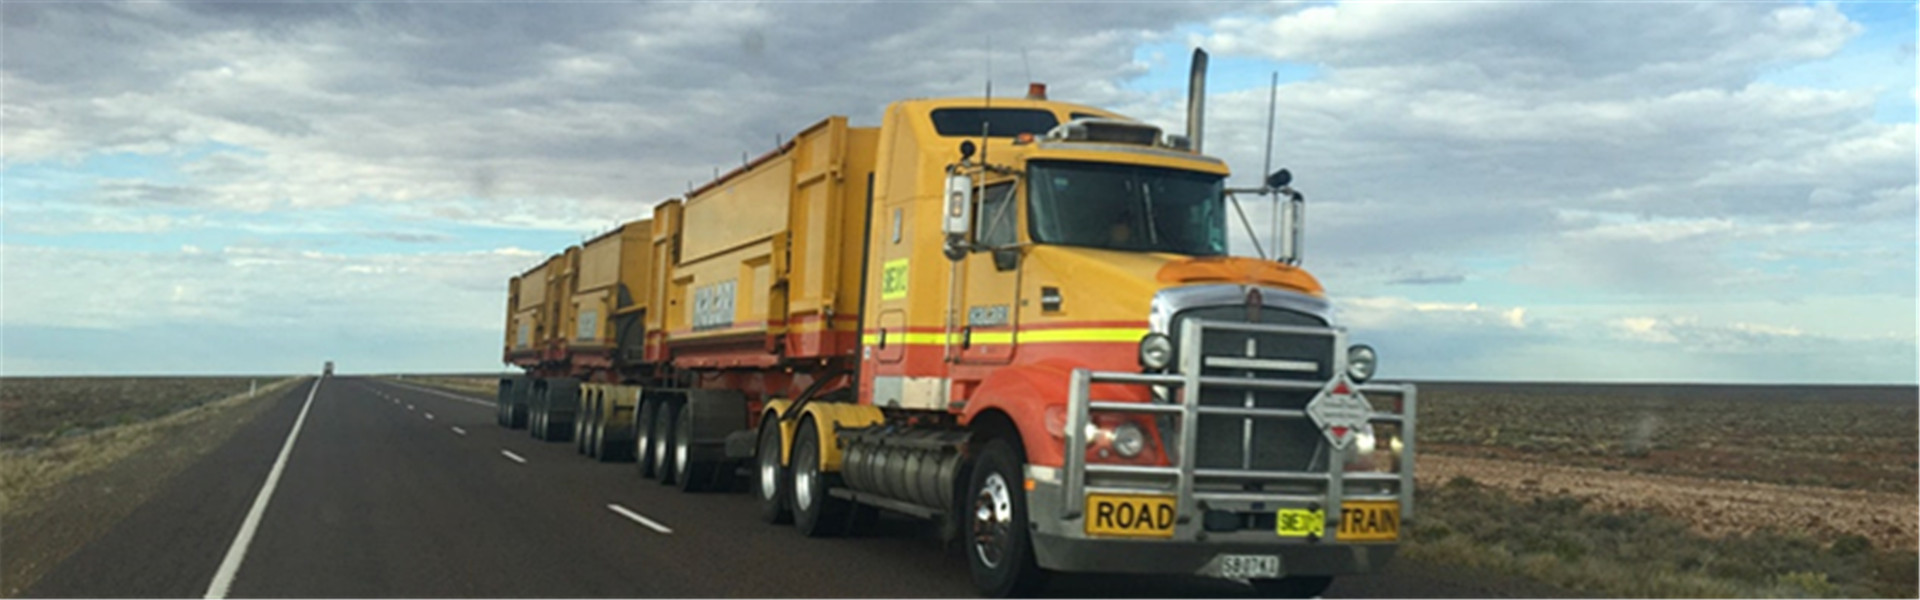 Get Accurate 3D Data for Large Trucks in Short Time?